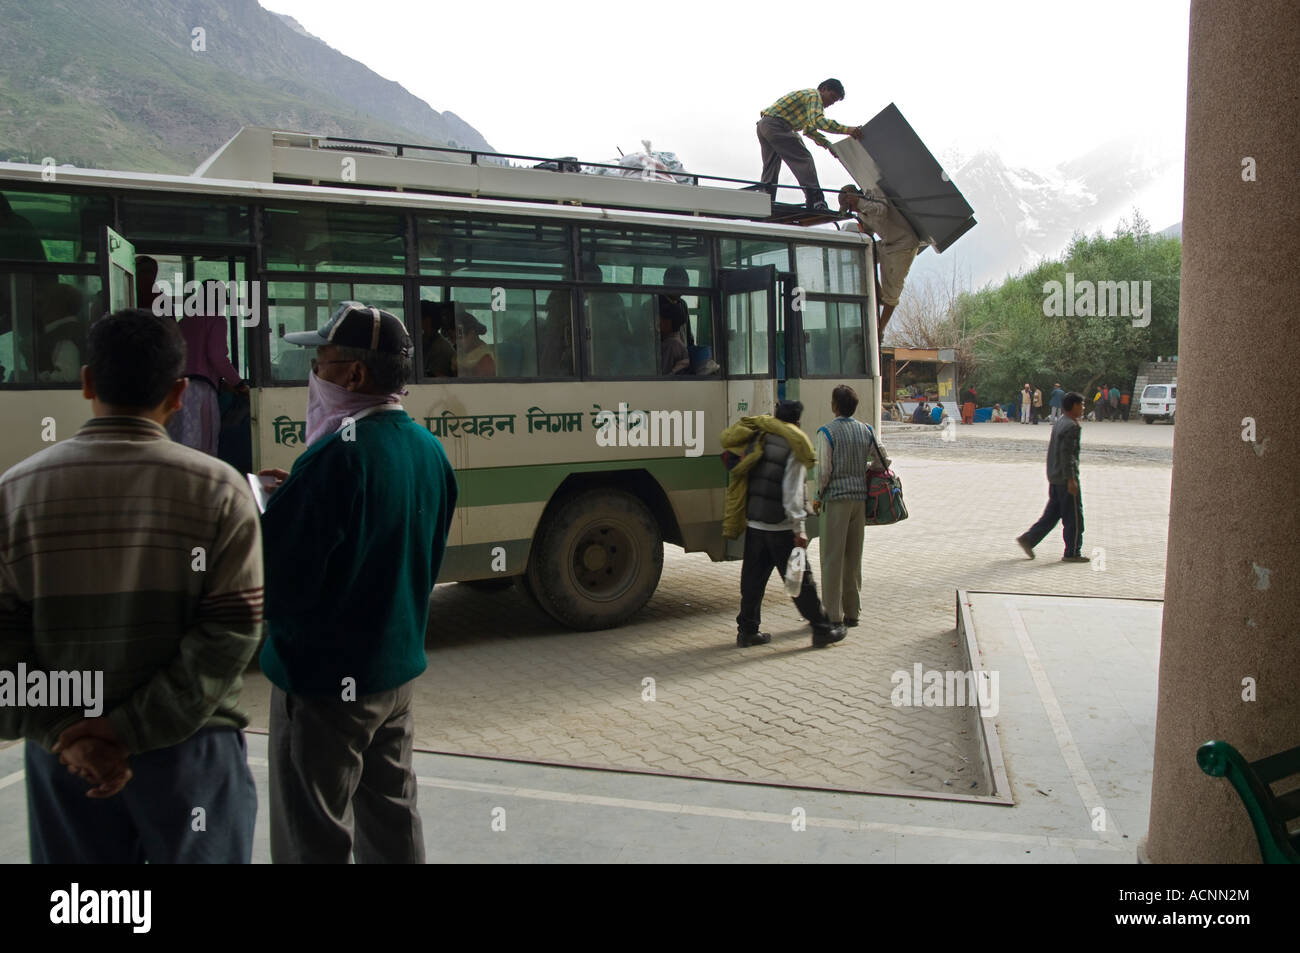 India Himalaya Himachal Pradesh Keylong main bus station view with man climbing to bus top with cupboard on his - Stock Image